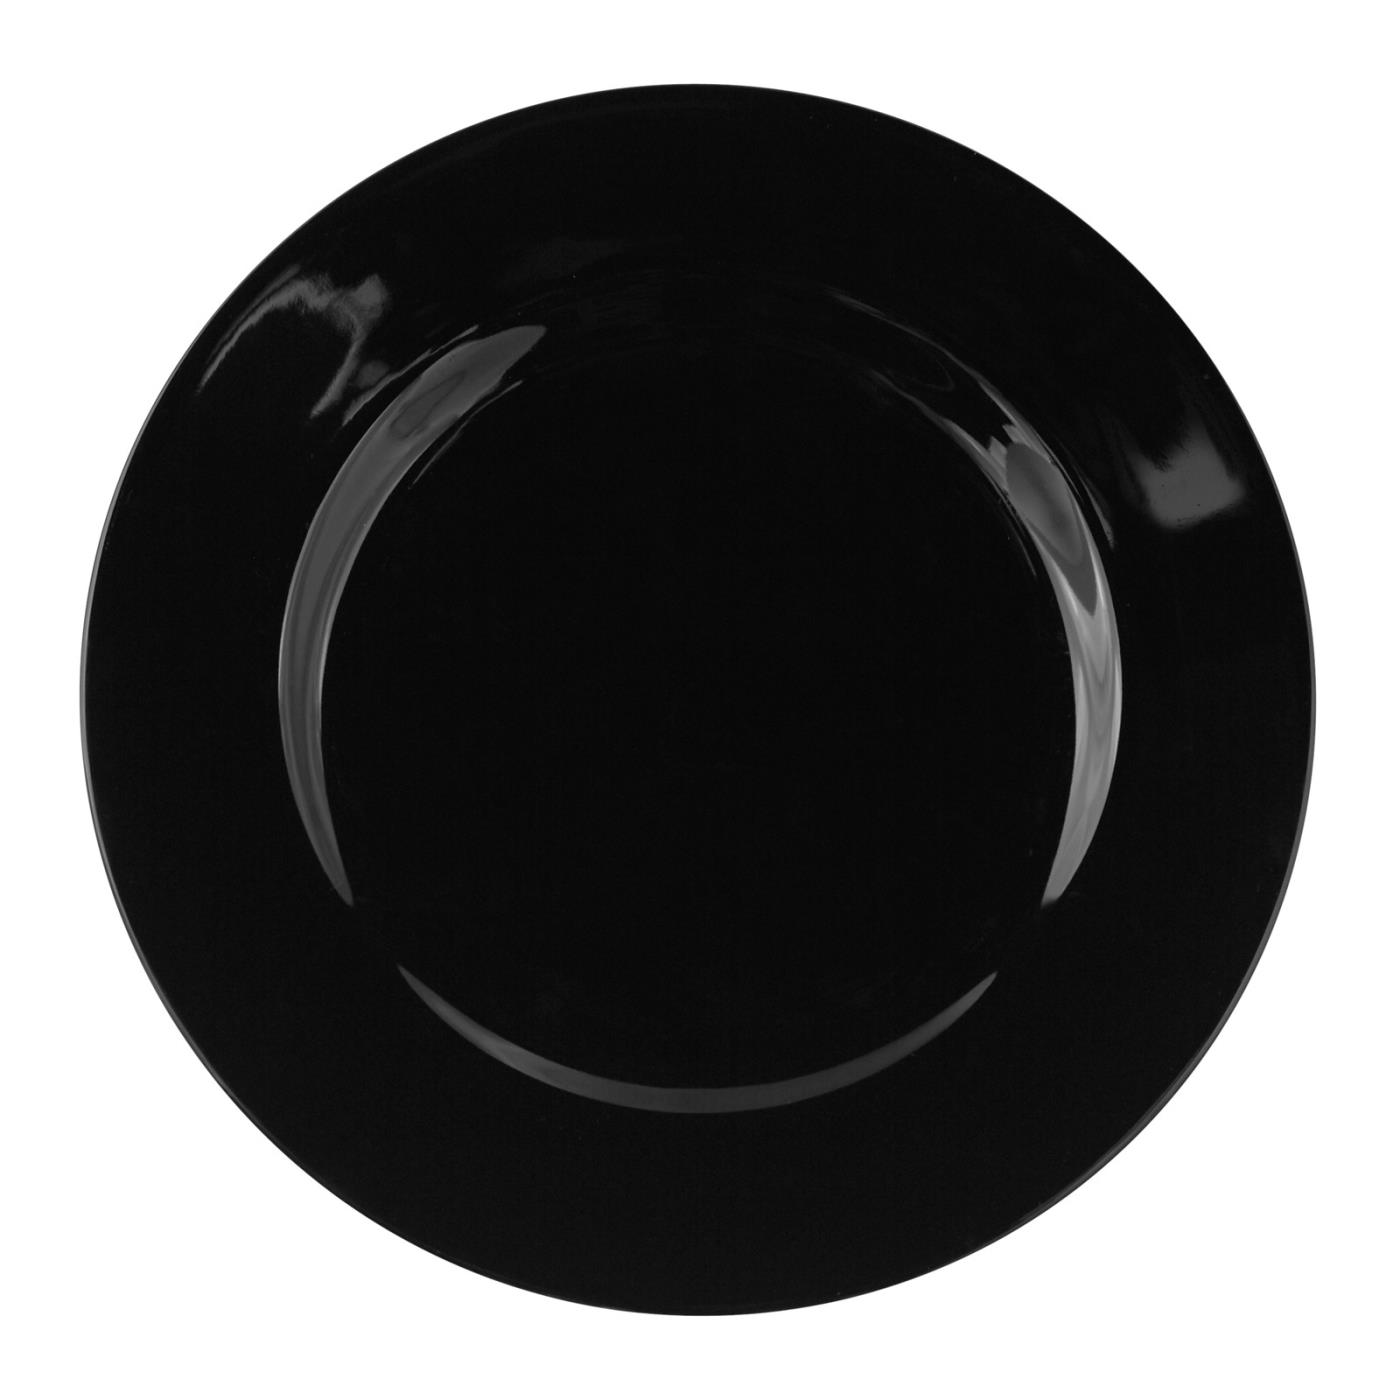 Black Rim Collection -  Salad/Dessert Plate 7.75""